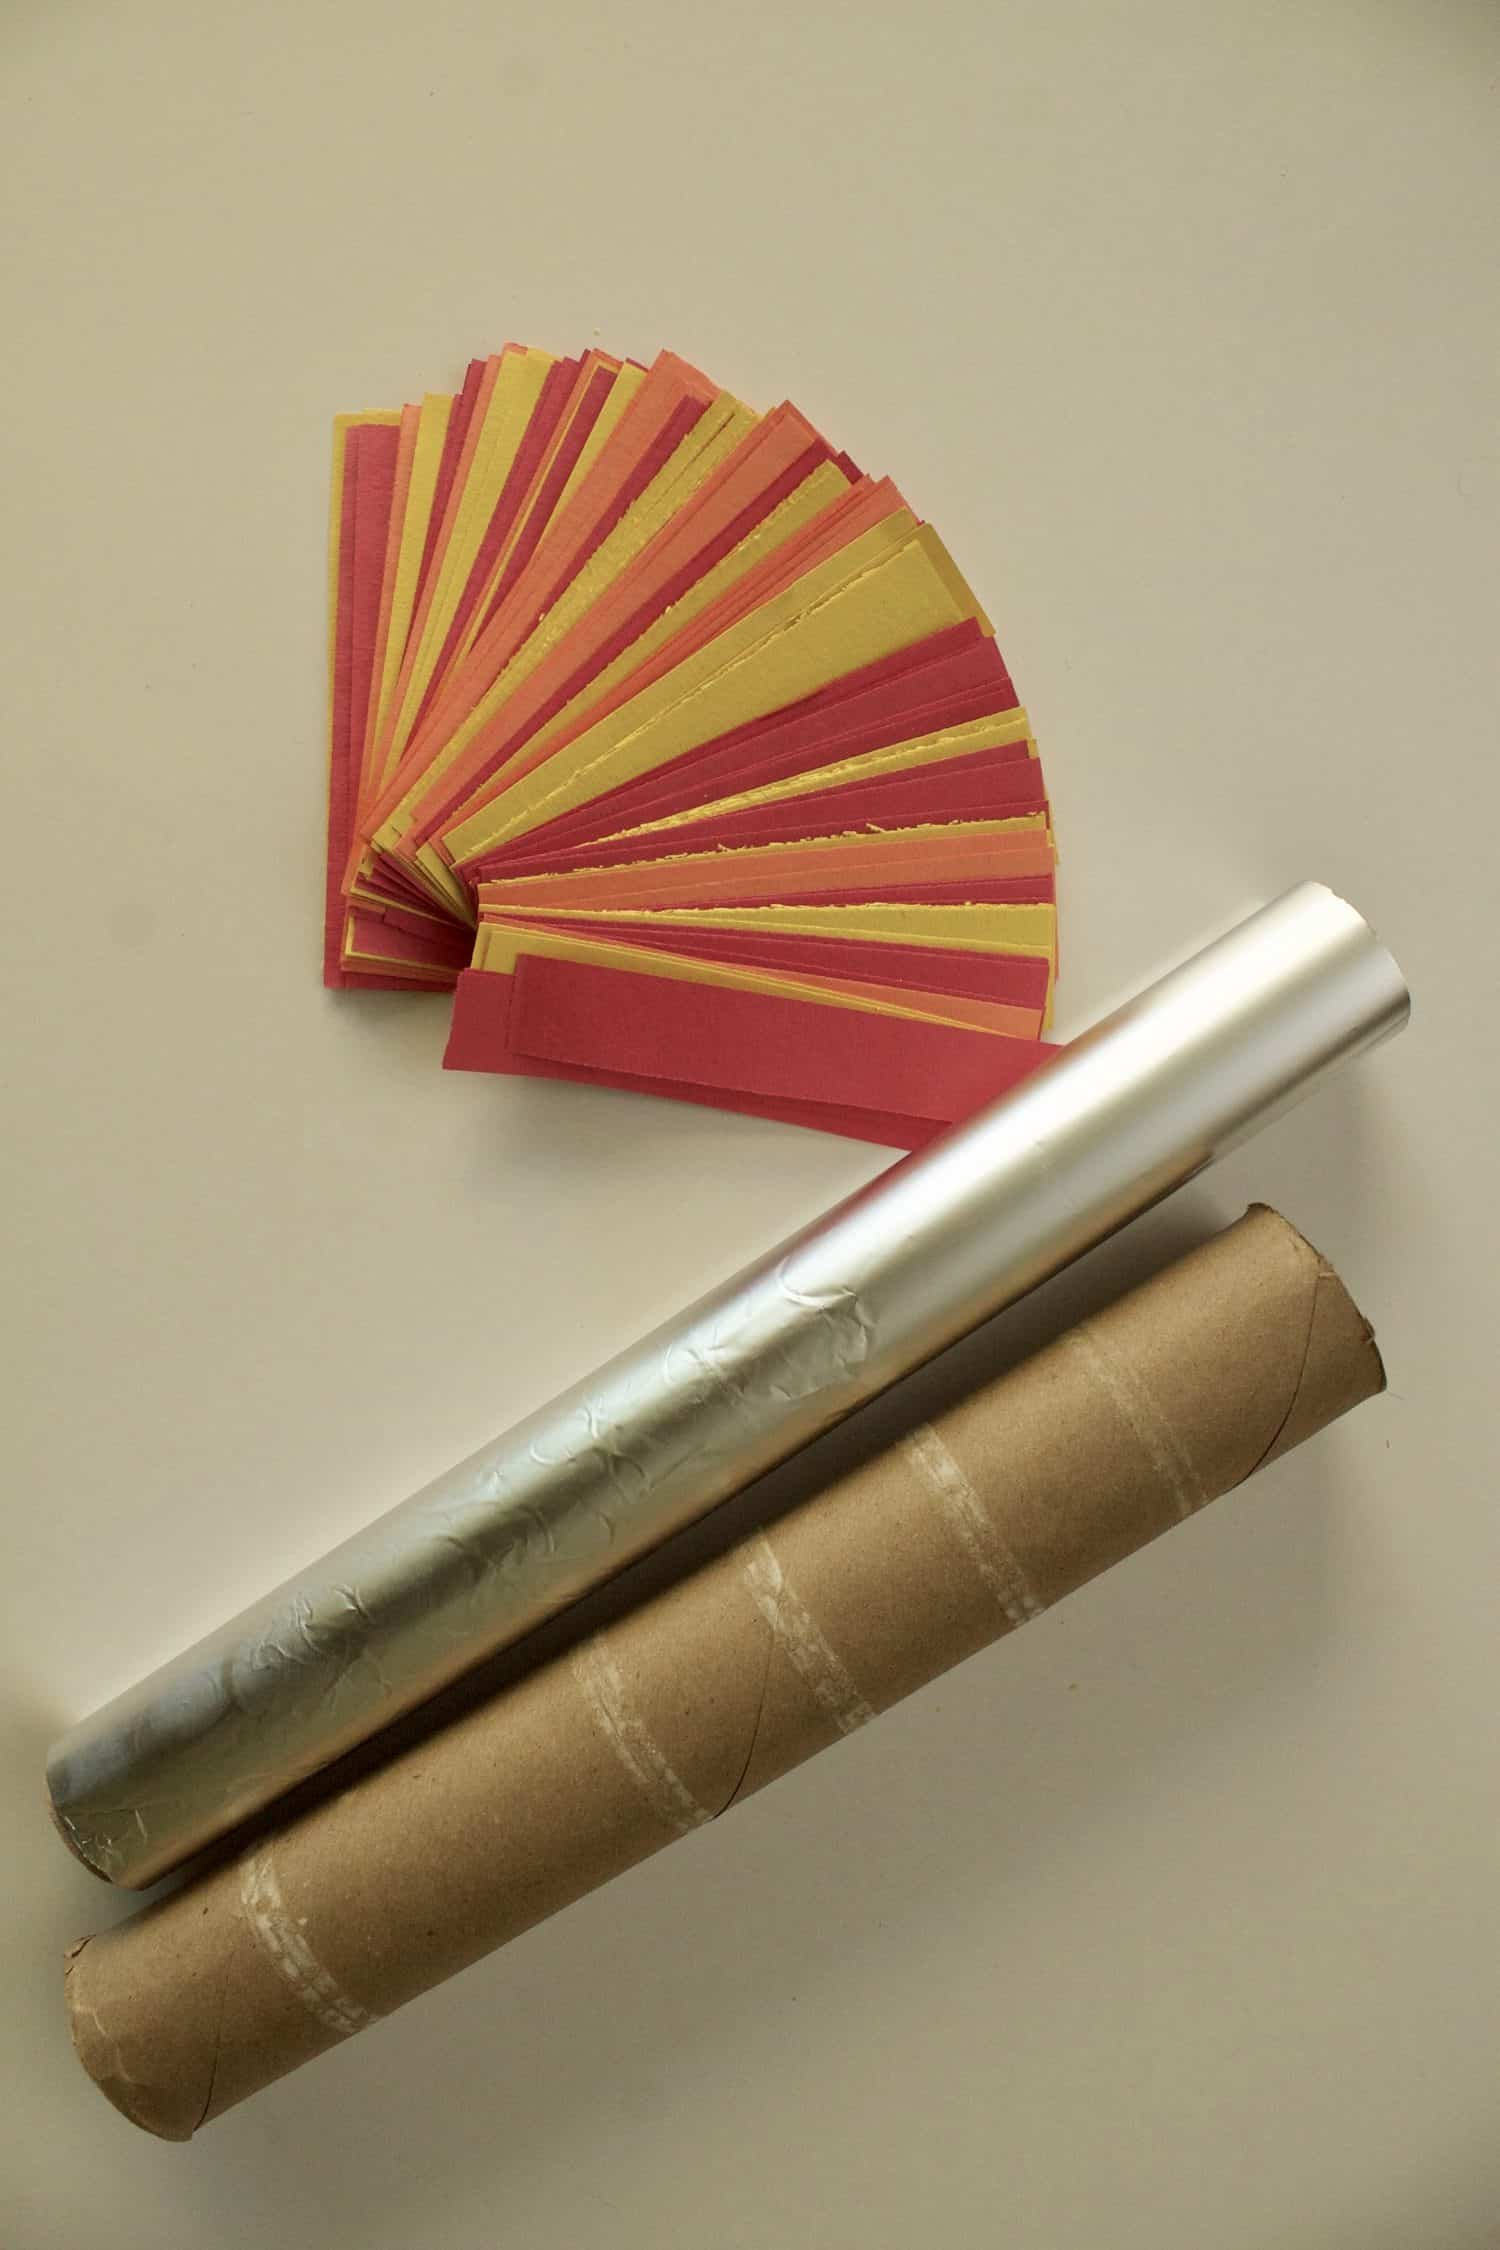 a stack of small strips of yellow, red, and orange construction paper, a roll of aluminum foil, and a cardboard tube